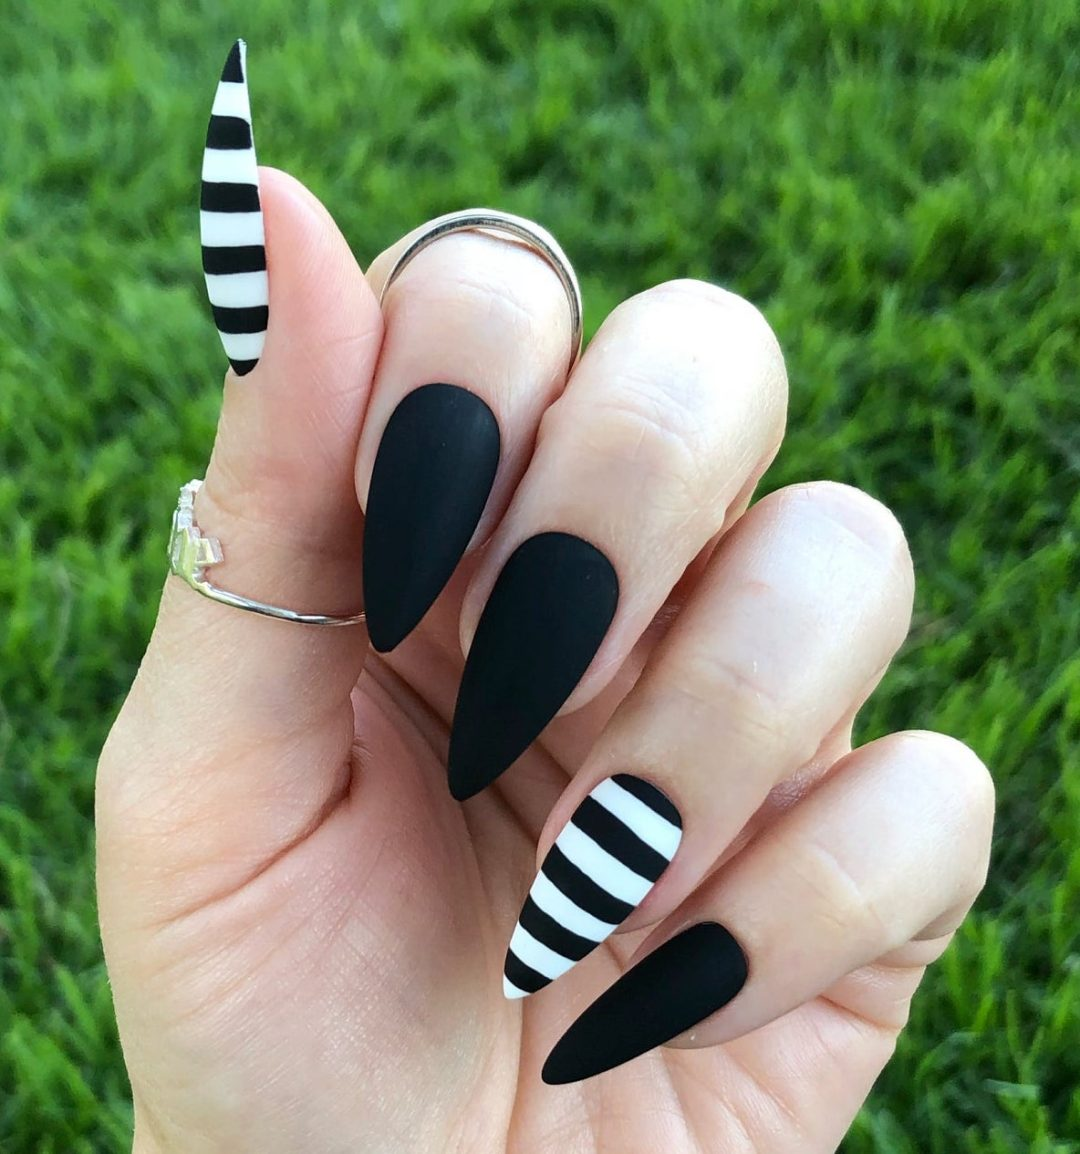 Matte black nails with black and white stripes